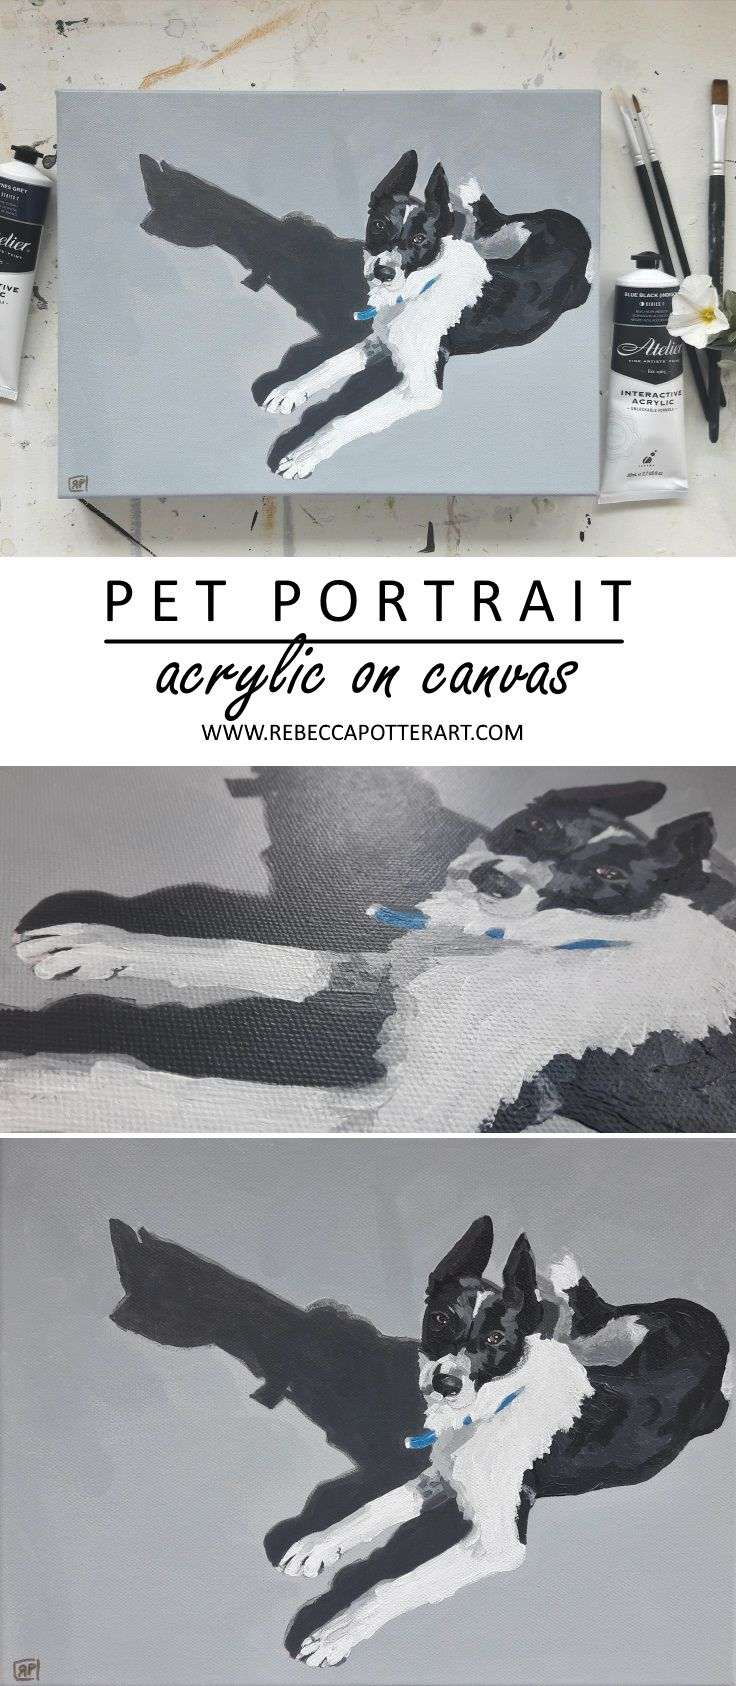 Buy Original Art. Pet Portrait of a sweet farm dog named Chelsea. Acrylic on 12 x 9 Canvas Painting by Rebecca Potter ART. Sept 2017